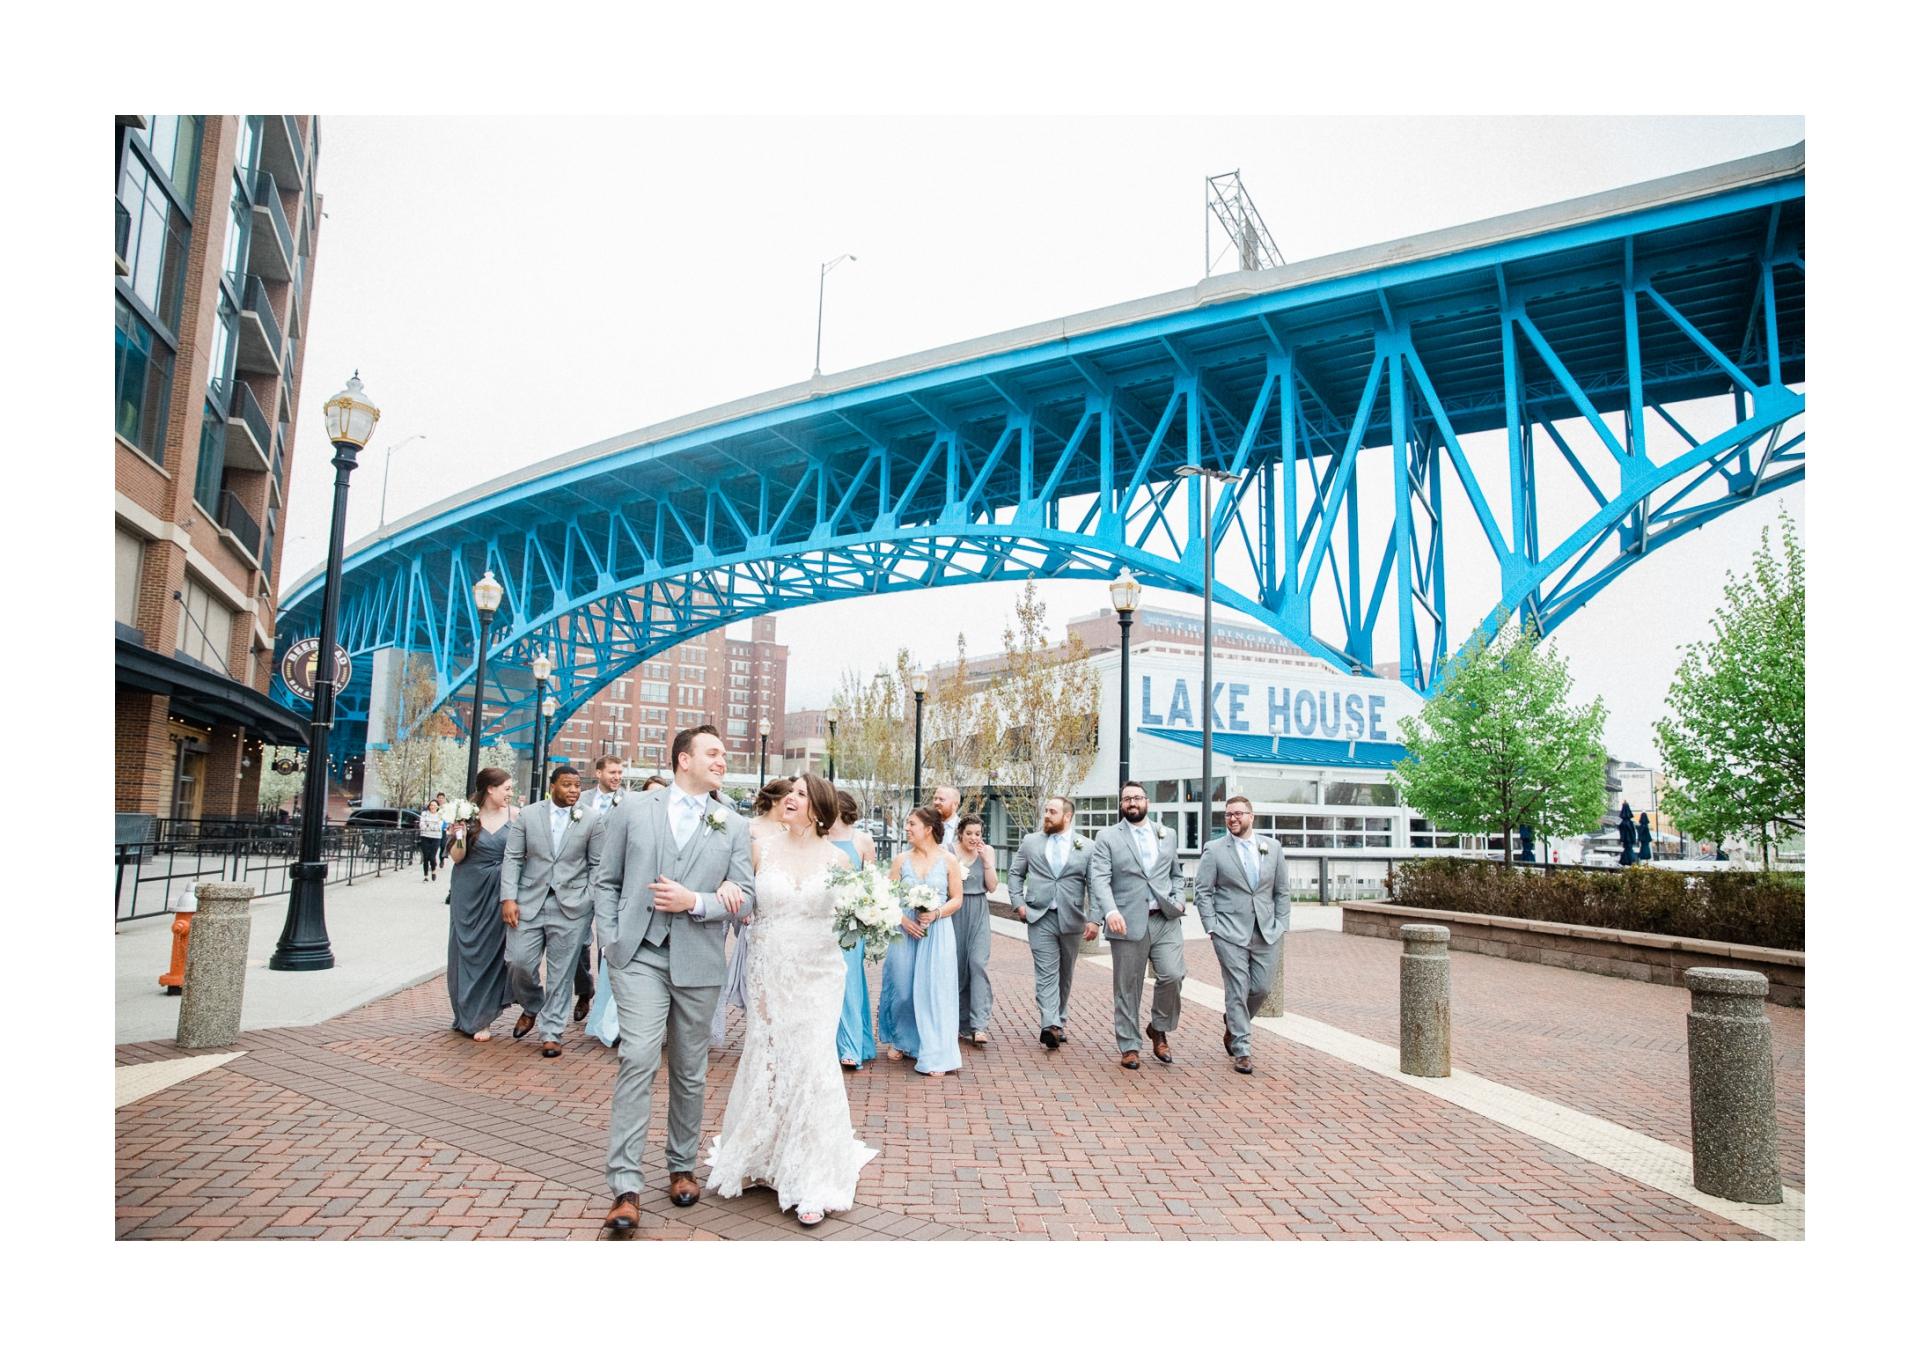 Windows on the River Cleveland Wedding Photographer 1 39.jpg